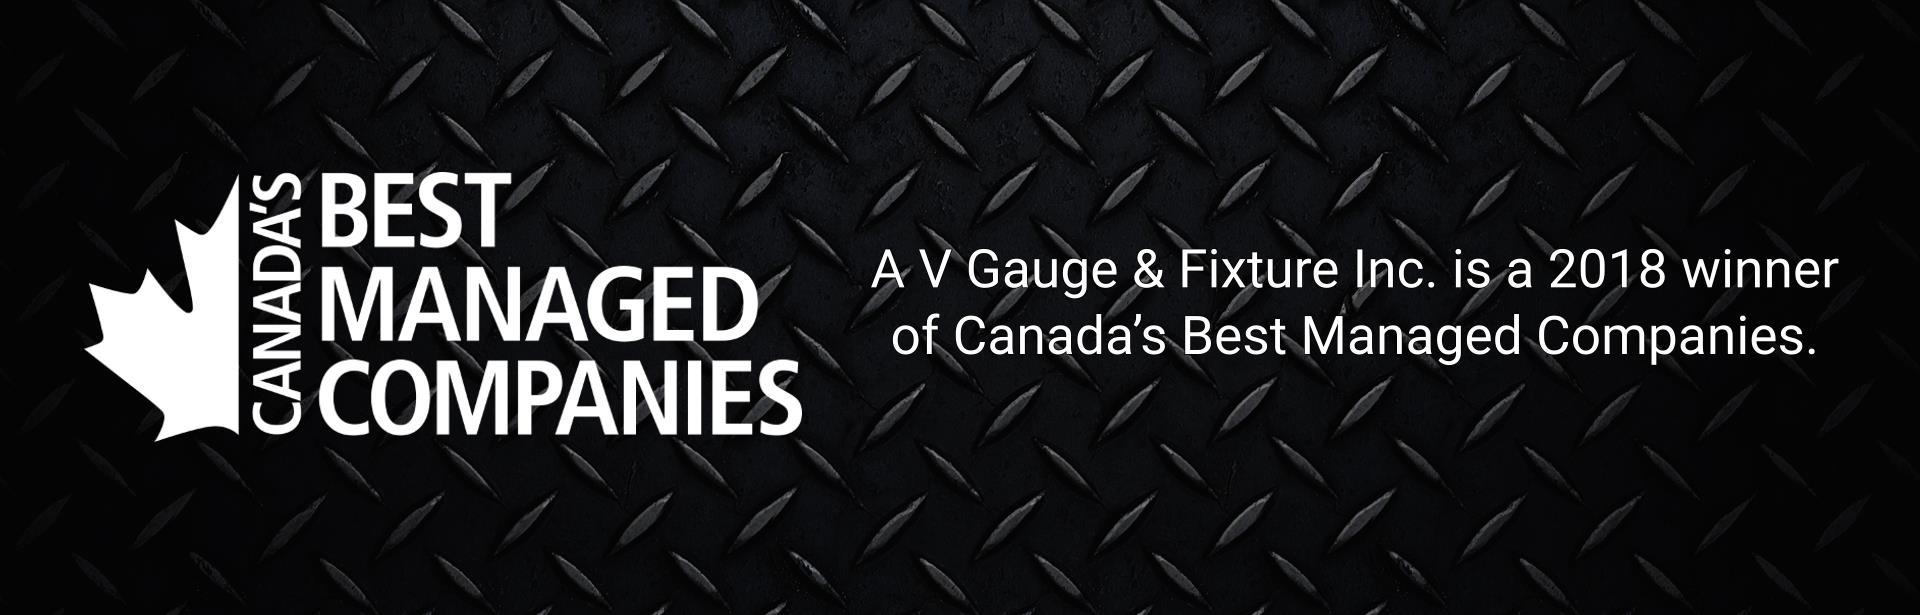 A V Gauge & Fixture Inc. is a 2018 winner of Canada's Best Managed Companies.